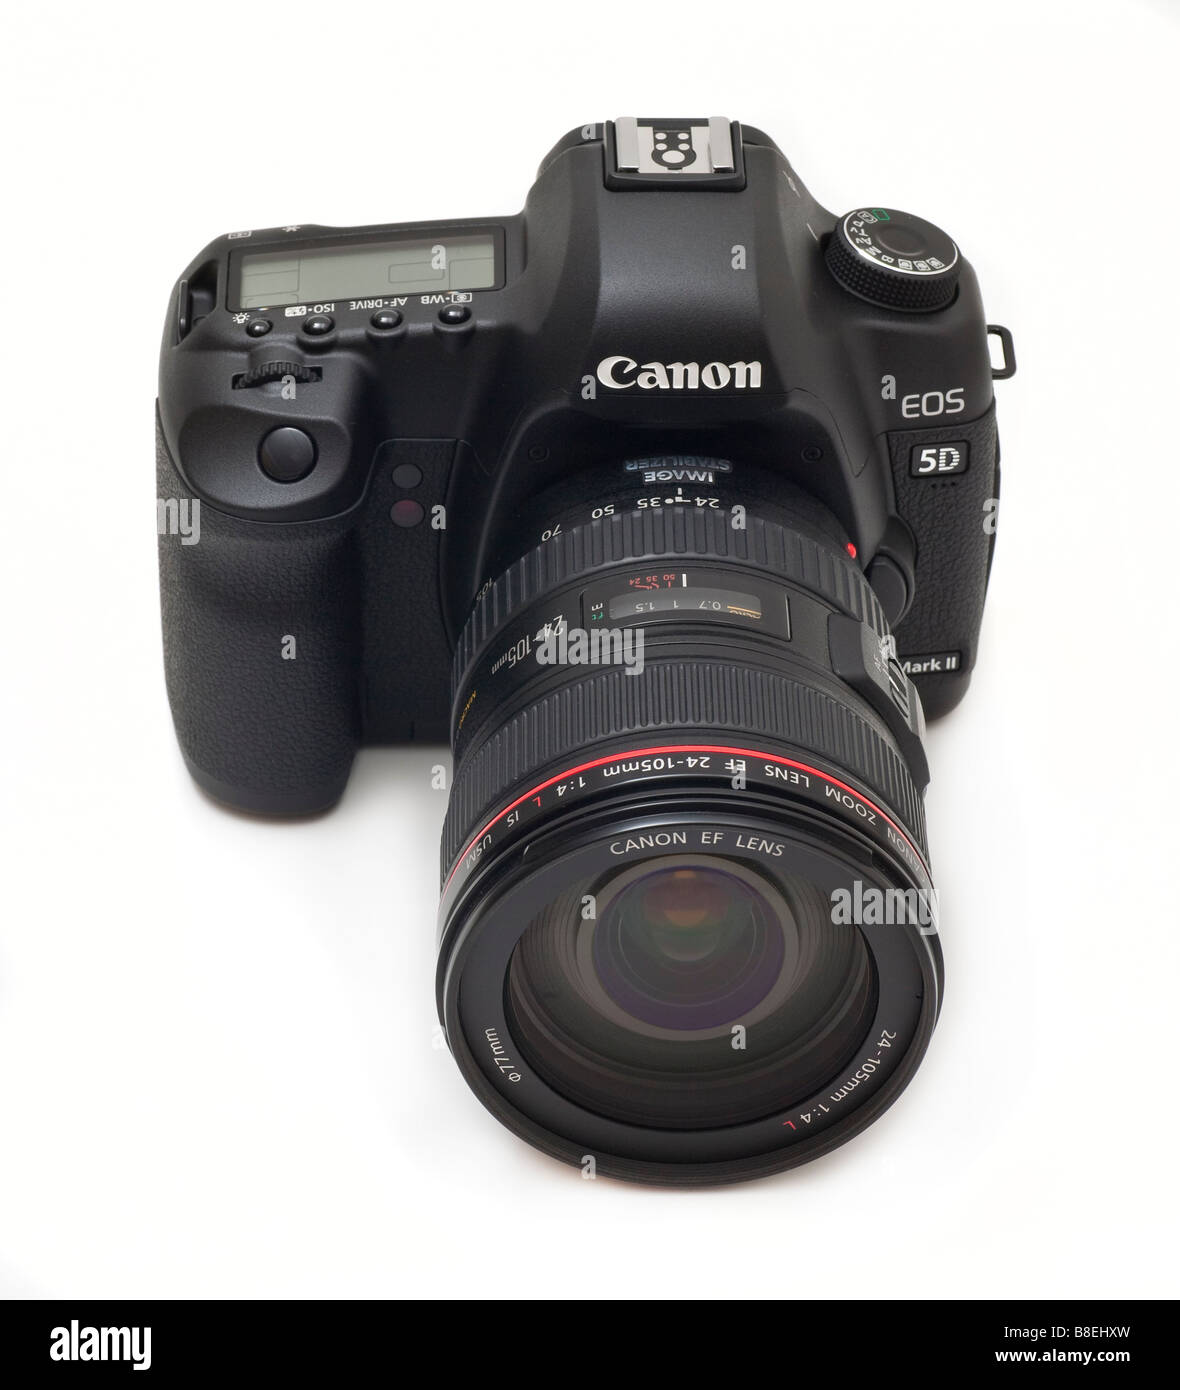 Canon 5d MkII digial SLR camera with 24-105mm L series zoom lens, 21mp CMOS sensor - Stock Image